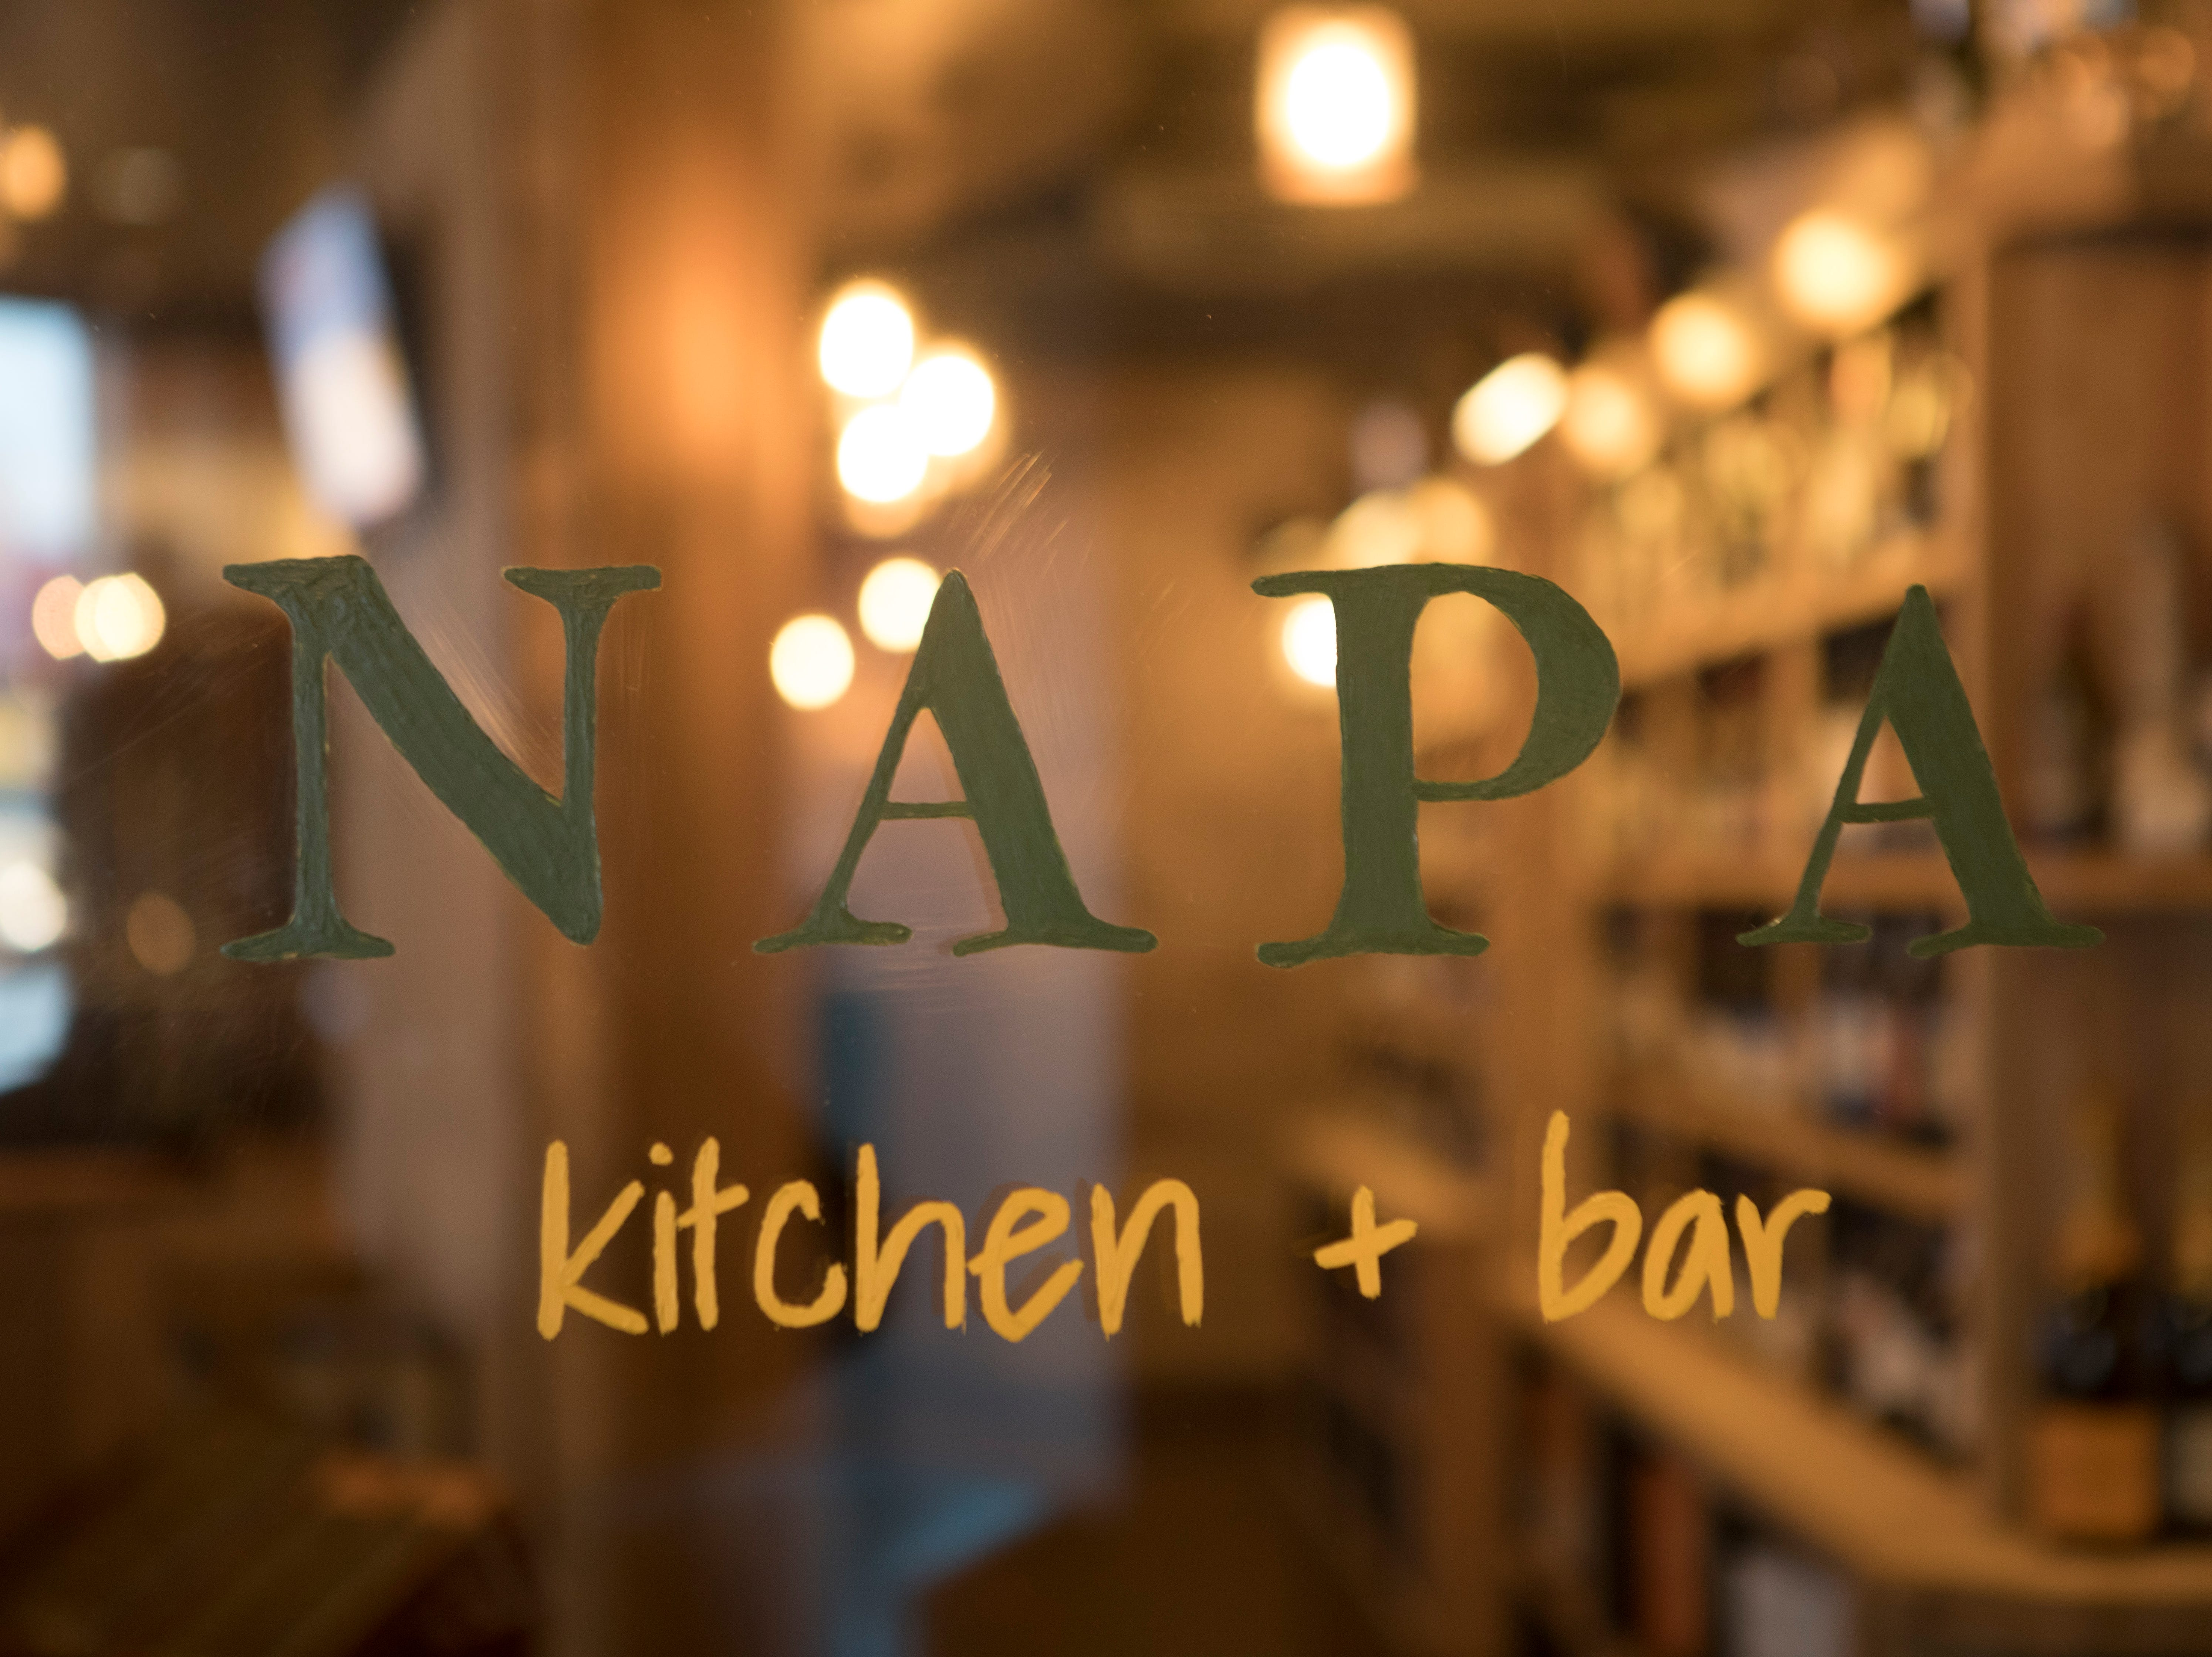 A view of Napa kitchen + bar dinning areas on Friday, Nov. 9, 2018 in Montgomery.